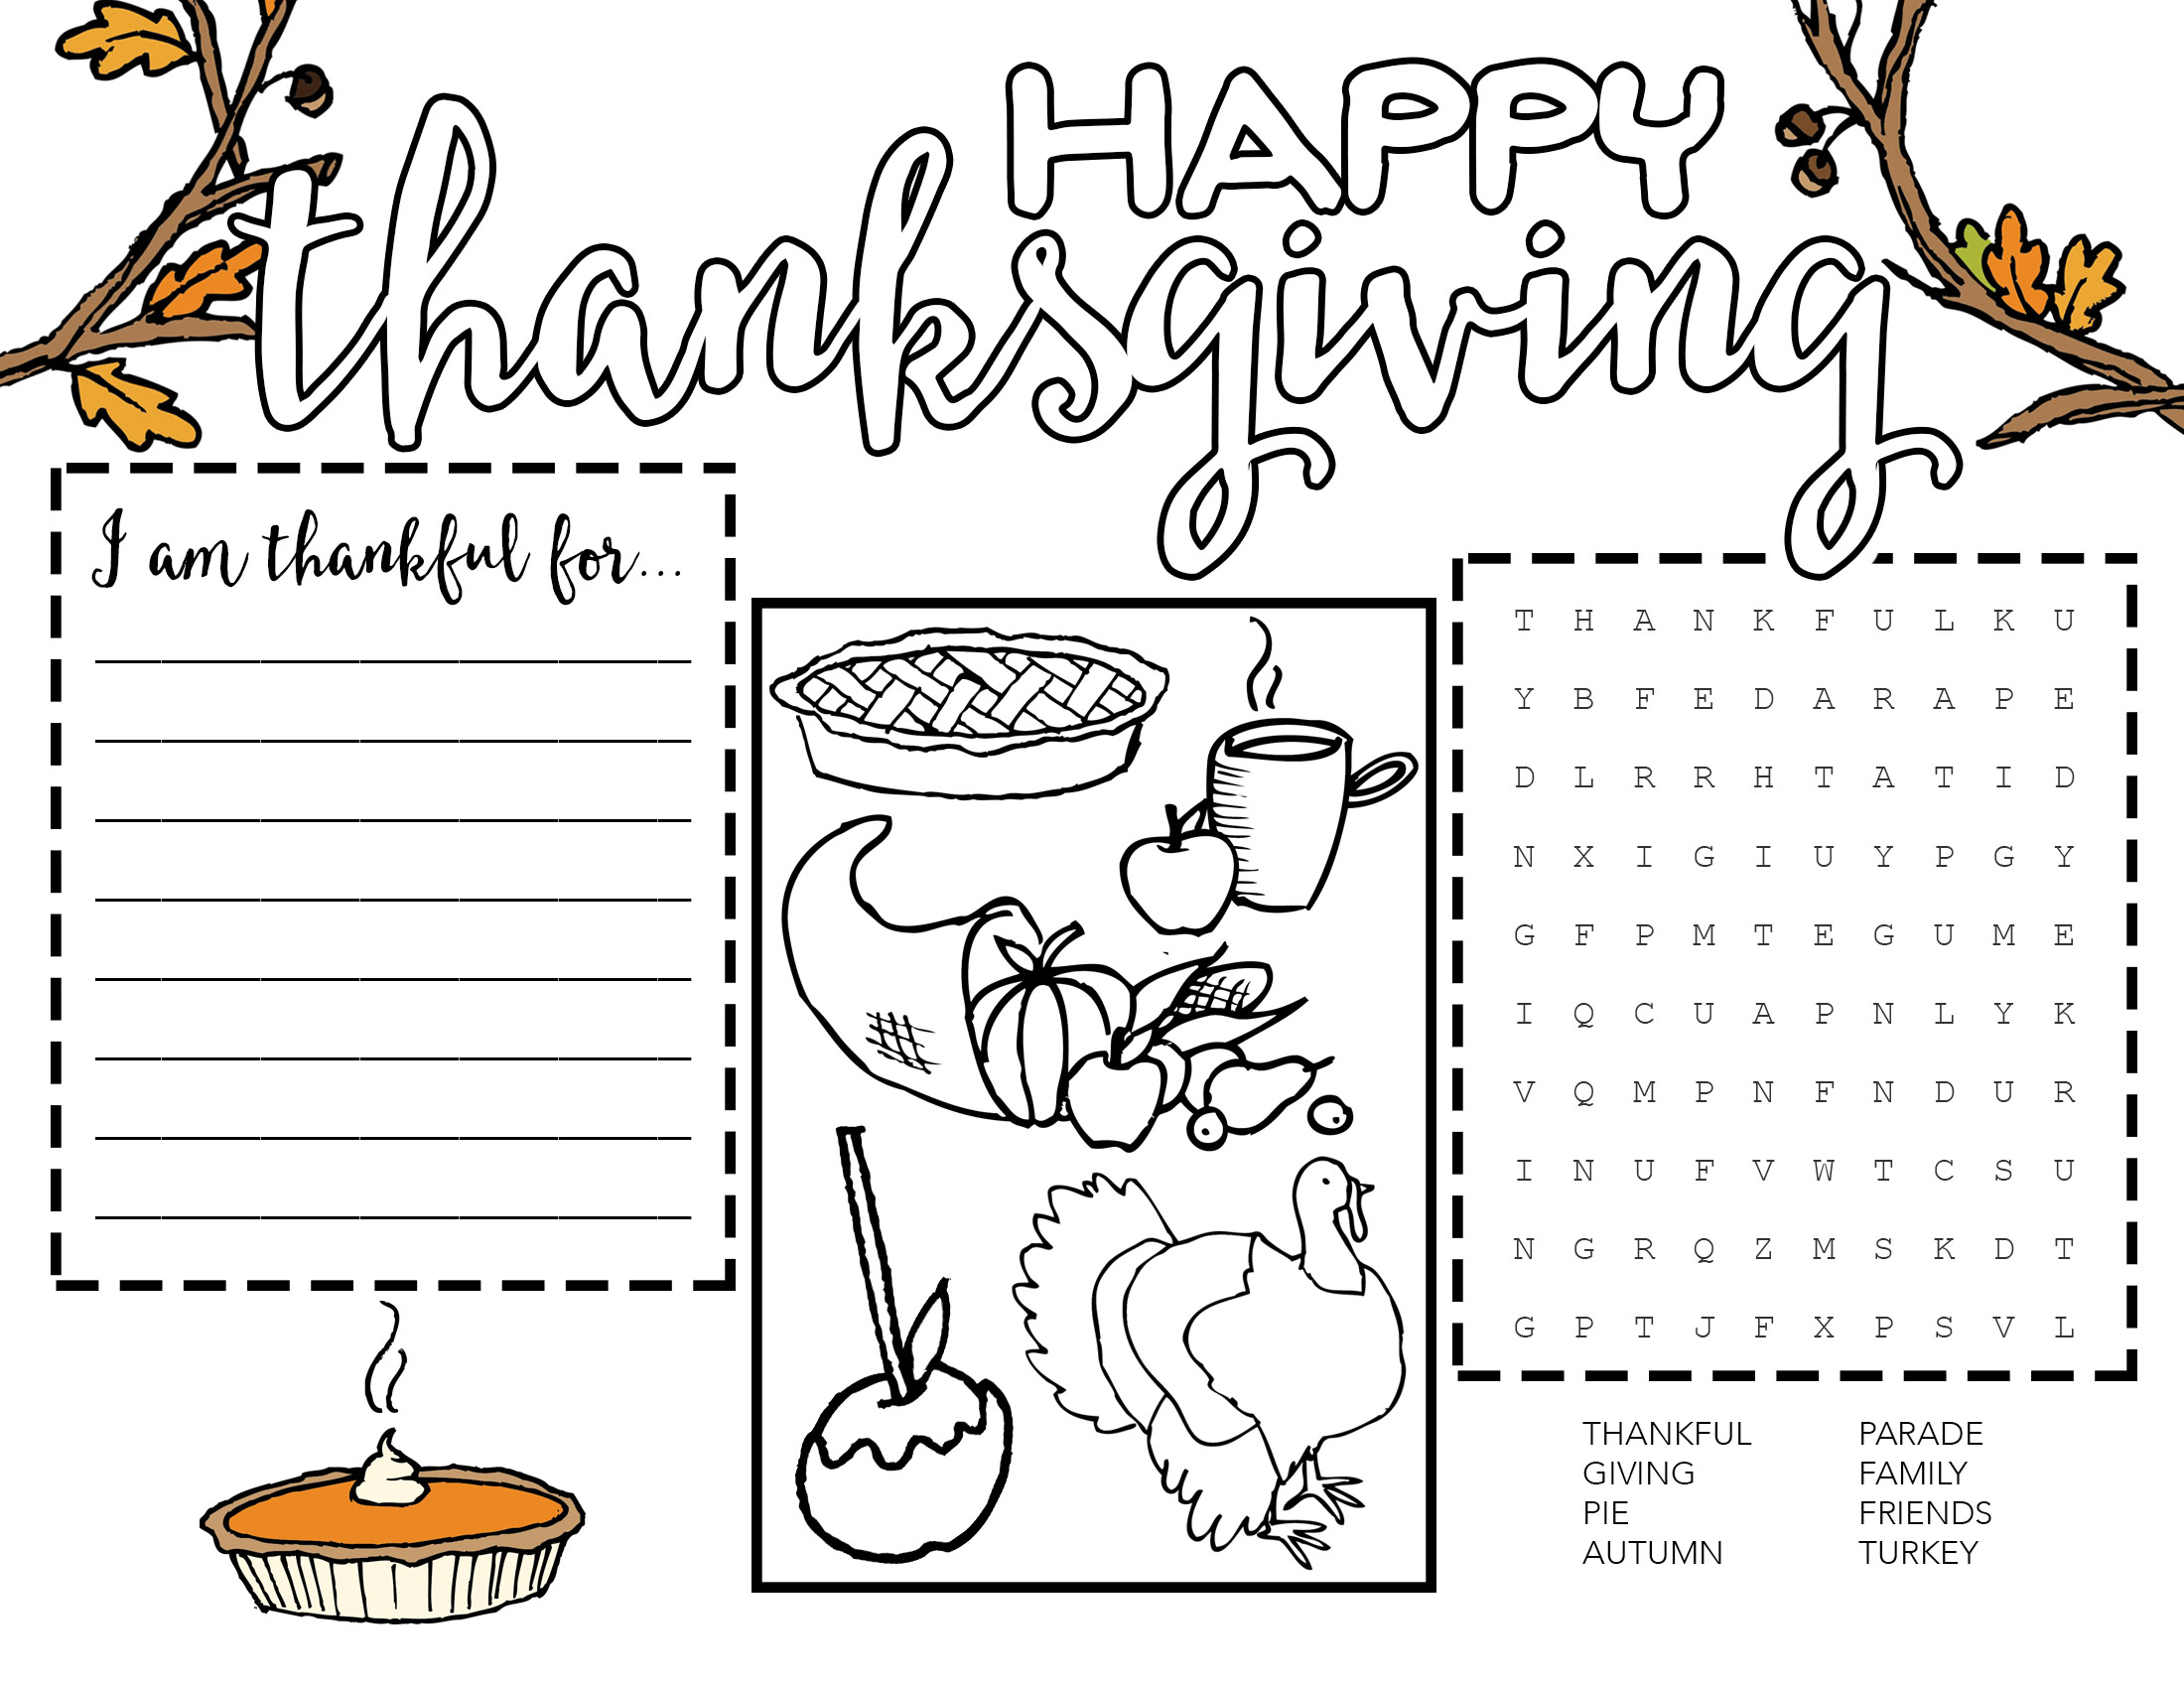 graphic about Printable Thanksgiving Placemat named Totally free Printable Thanksgiving Placemat - Our Handcrafted Lifetime